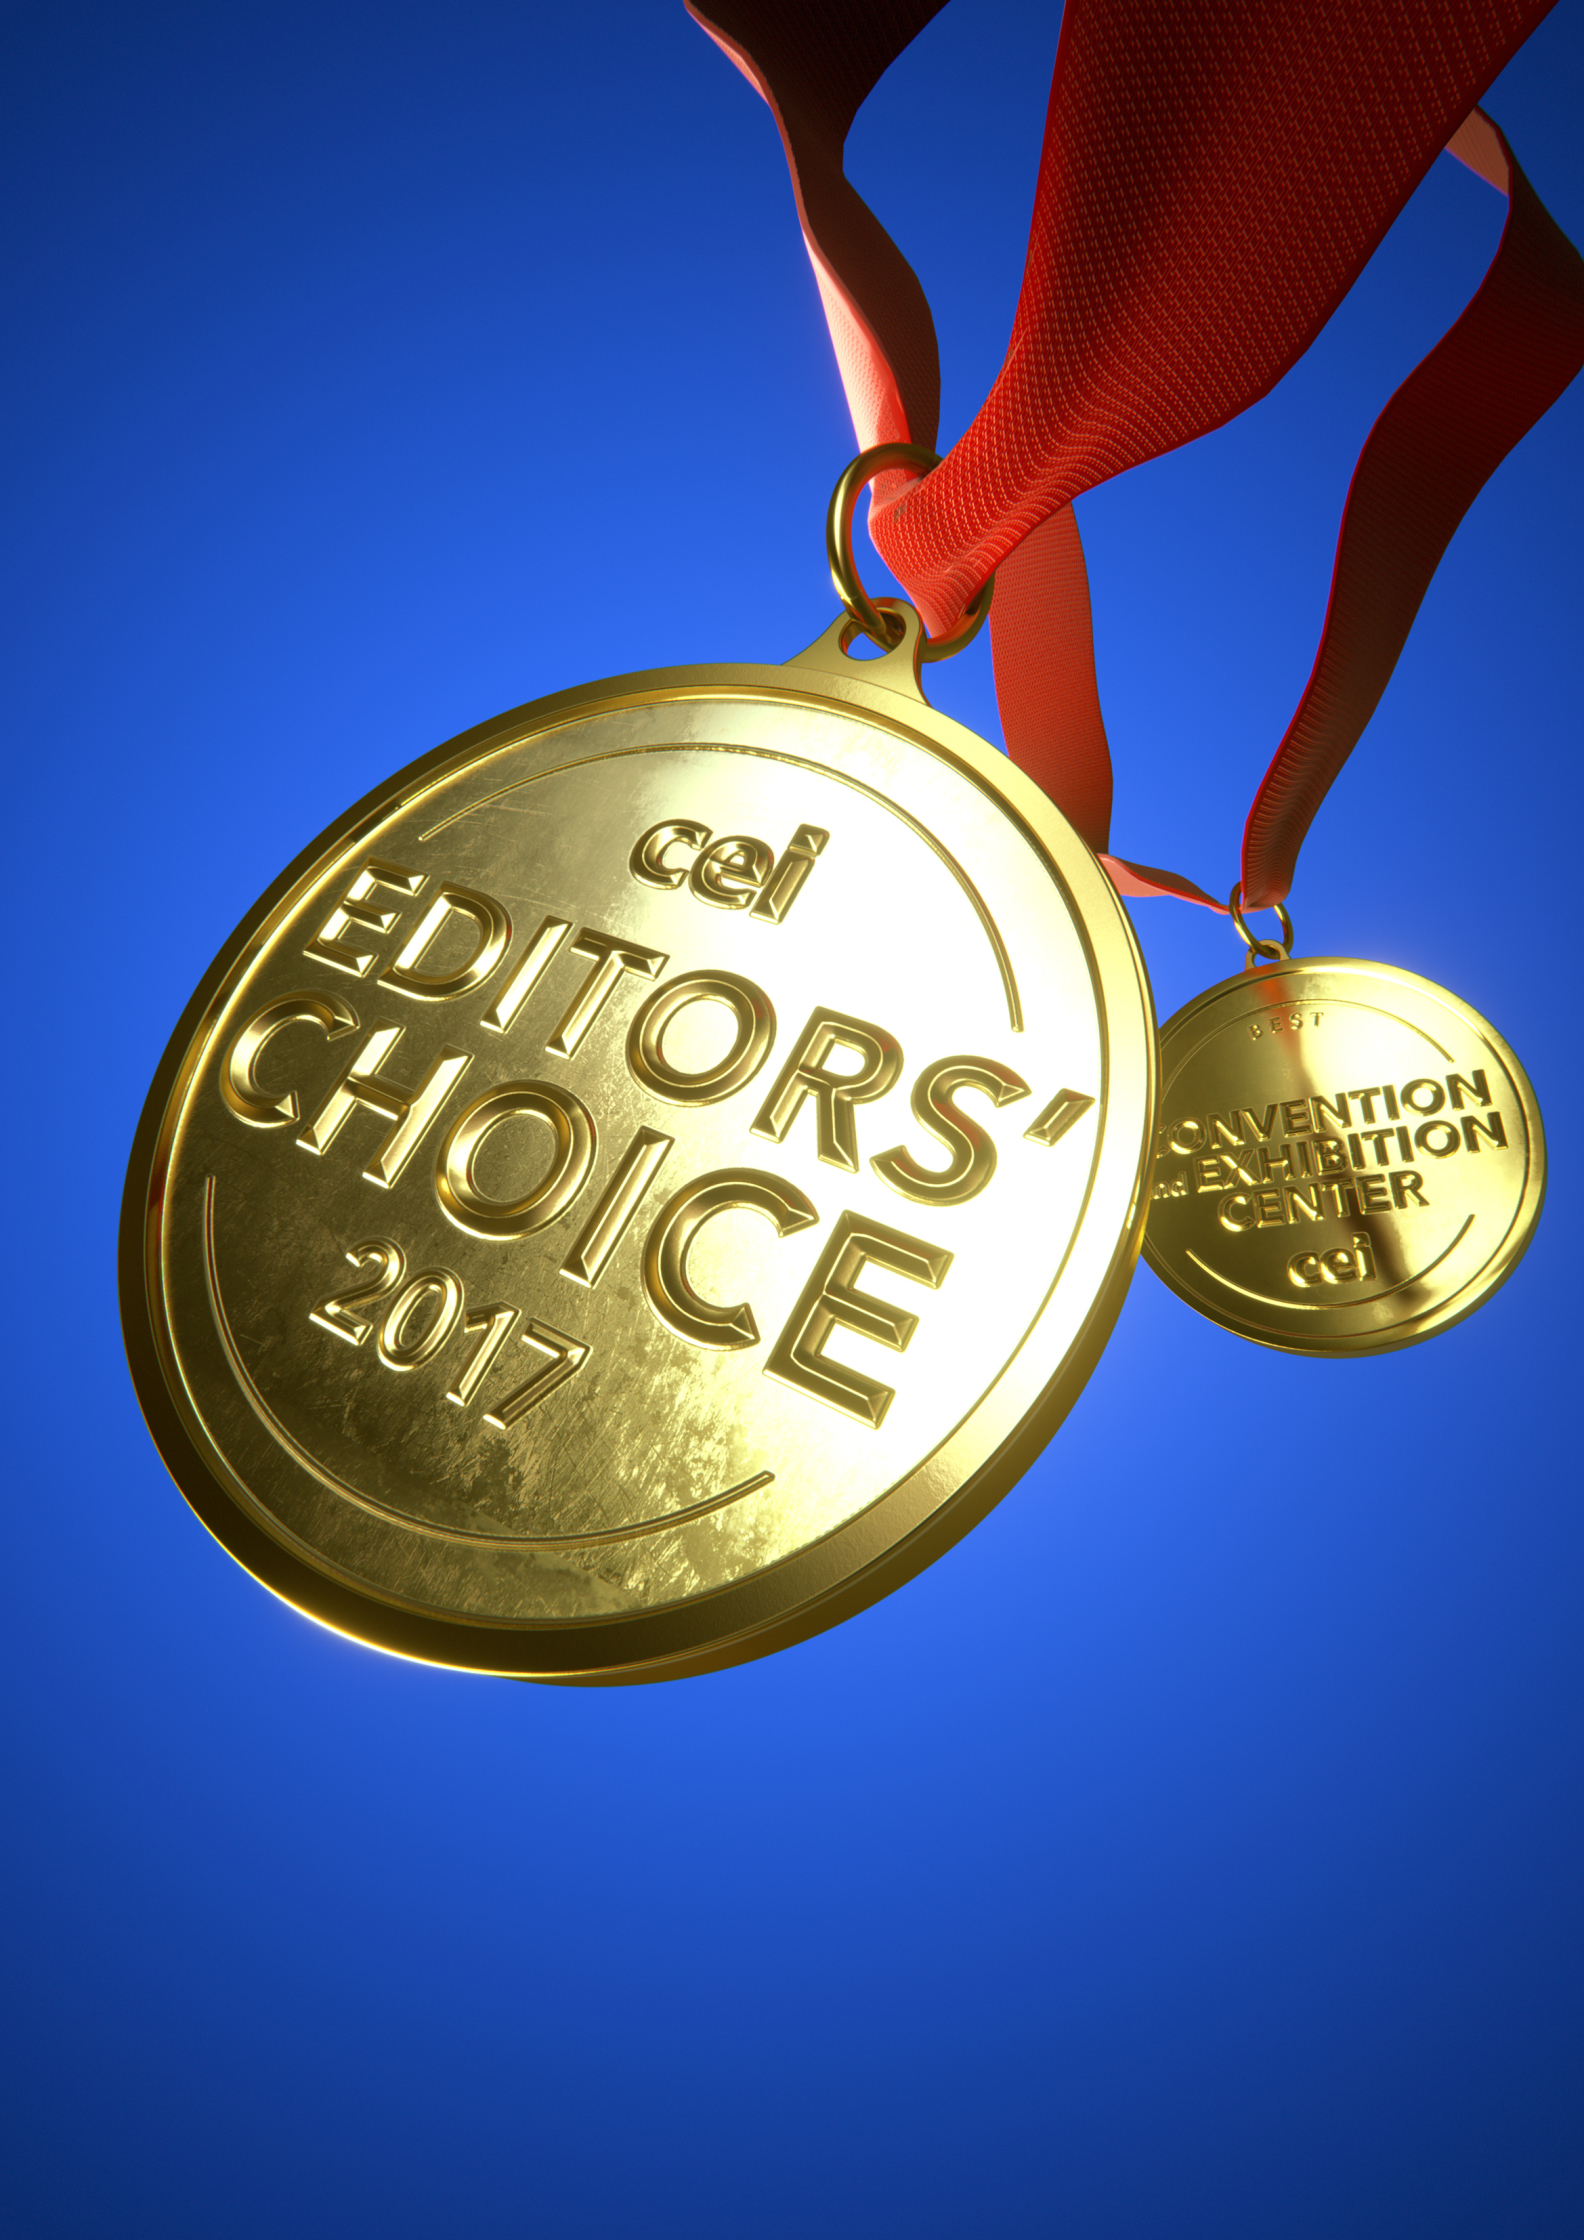 cgi-gold-medals- CEI-magazine cover-crowther.jpg